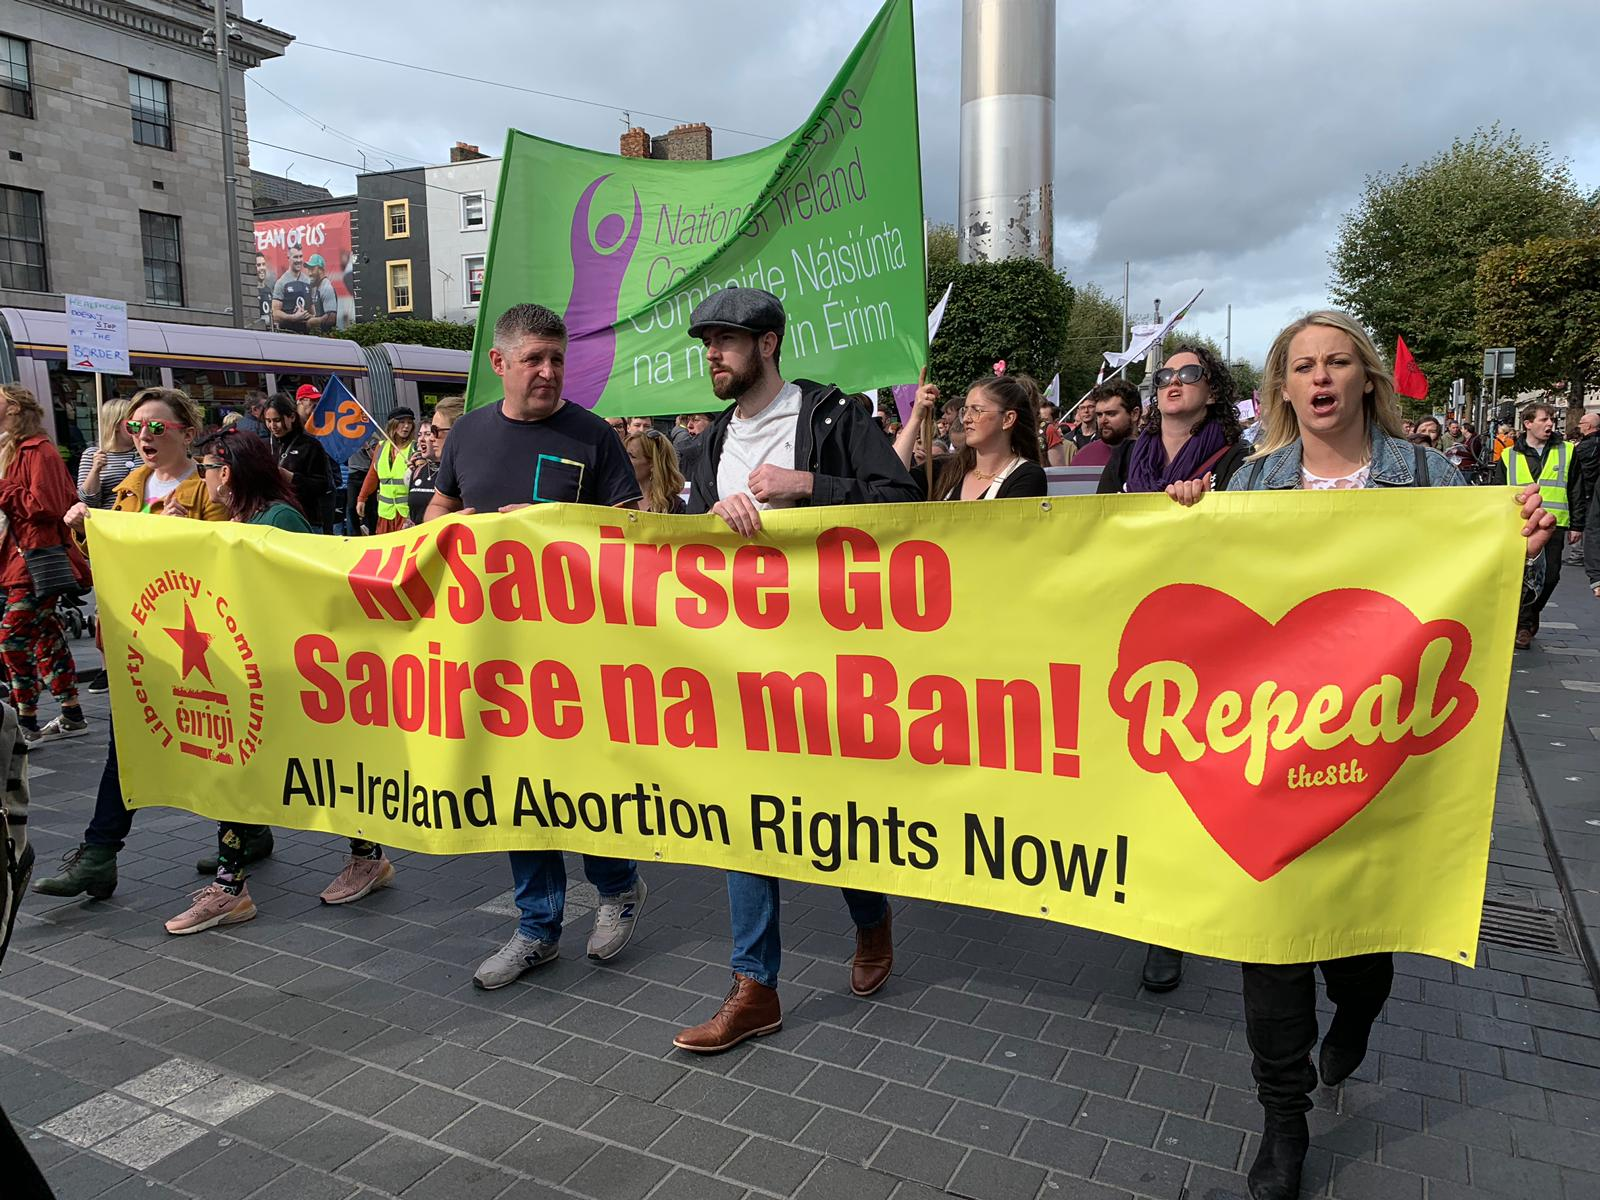 All-Ireland Abortion Rights Now! Passing the historic GPO on O'Connell Street, Dublin.